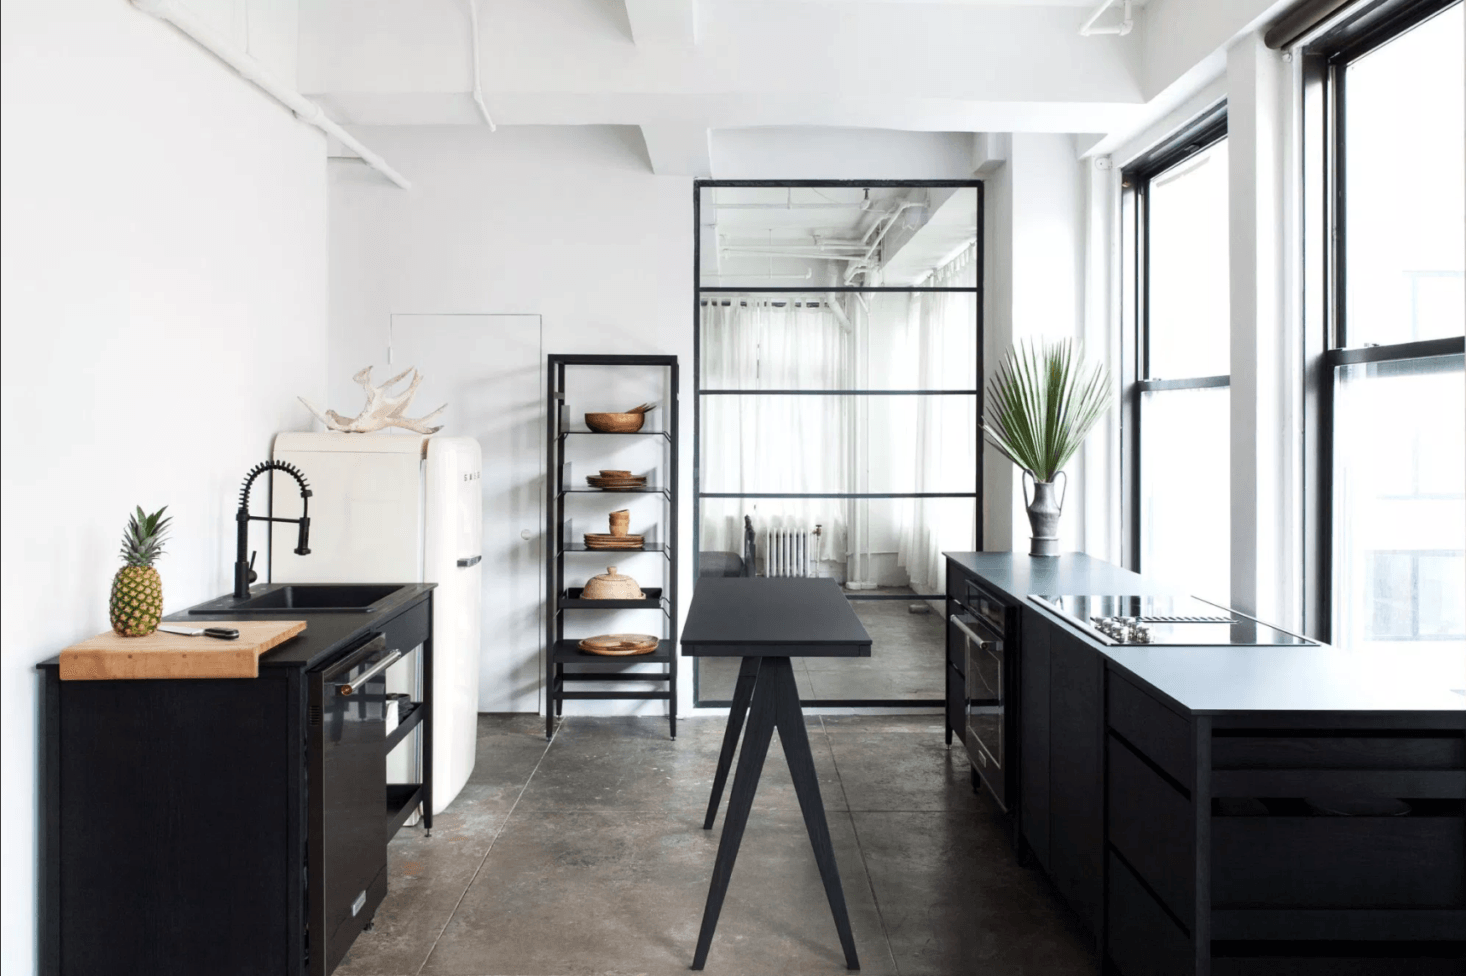 witness-apartment-coquo-kitchen-new-york-city-1466x976.png